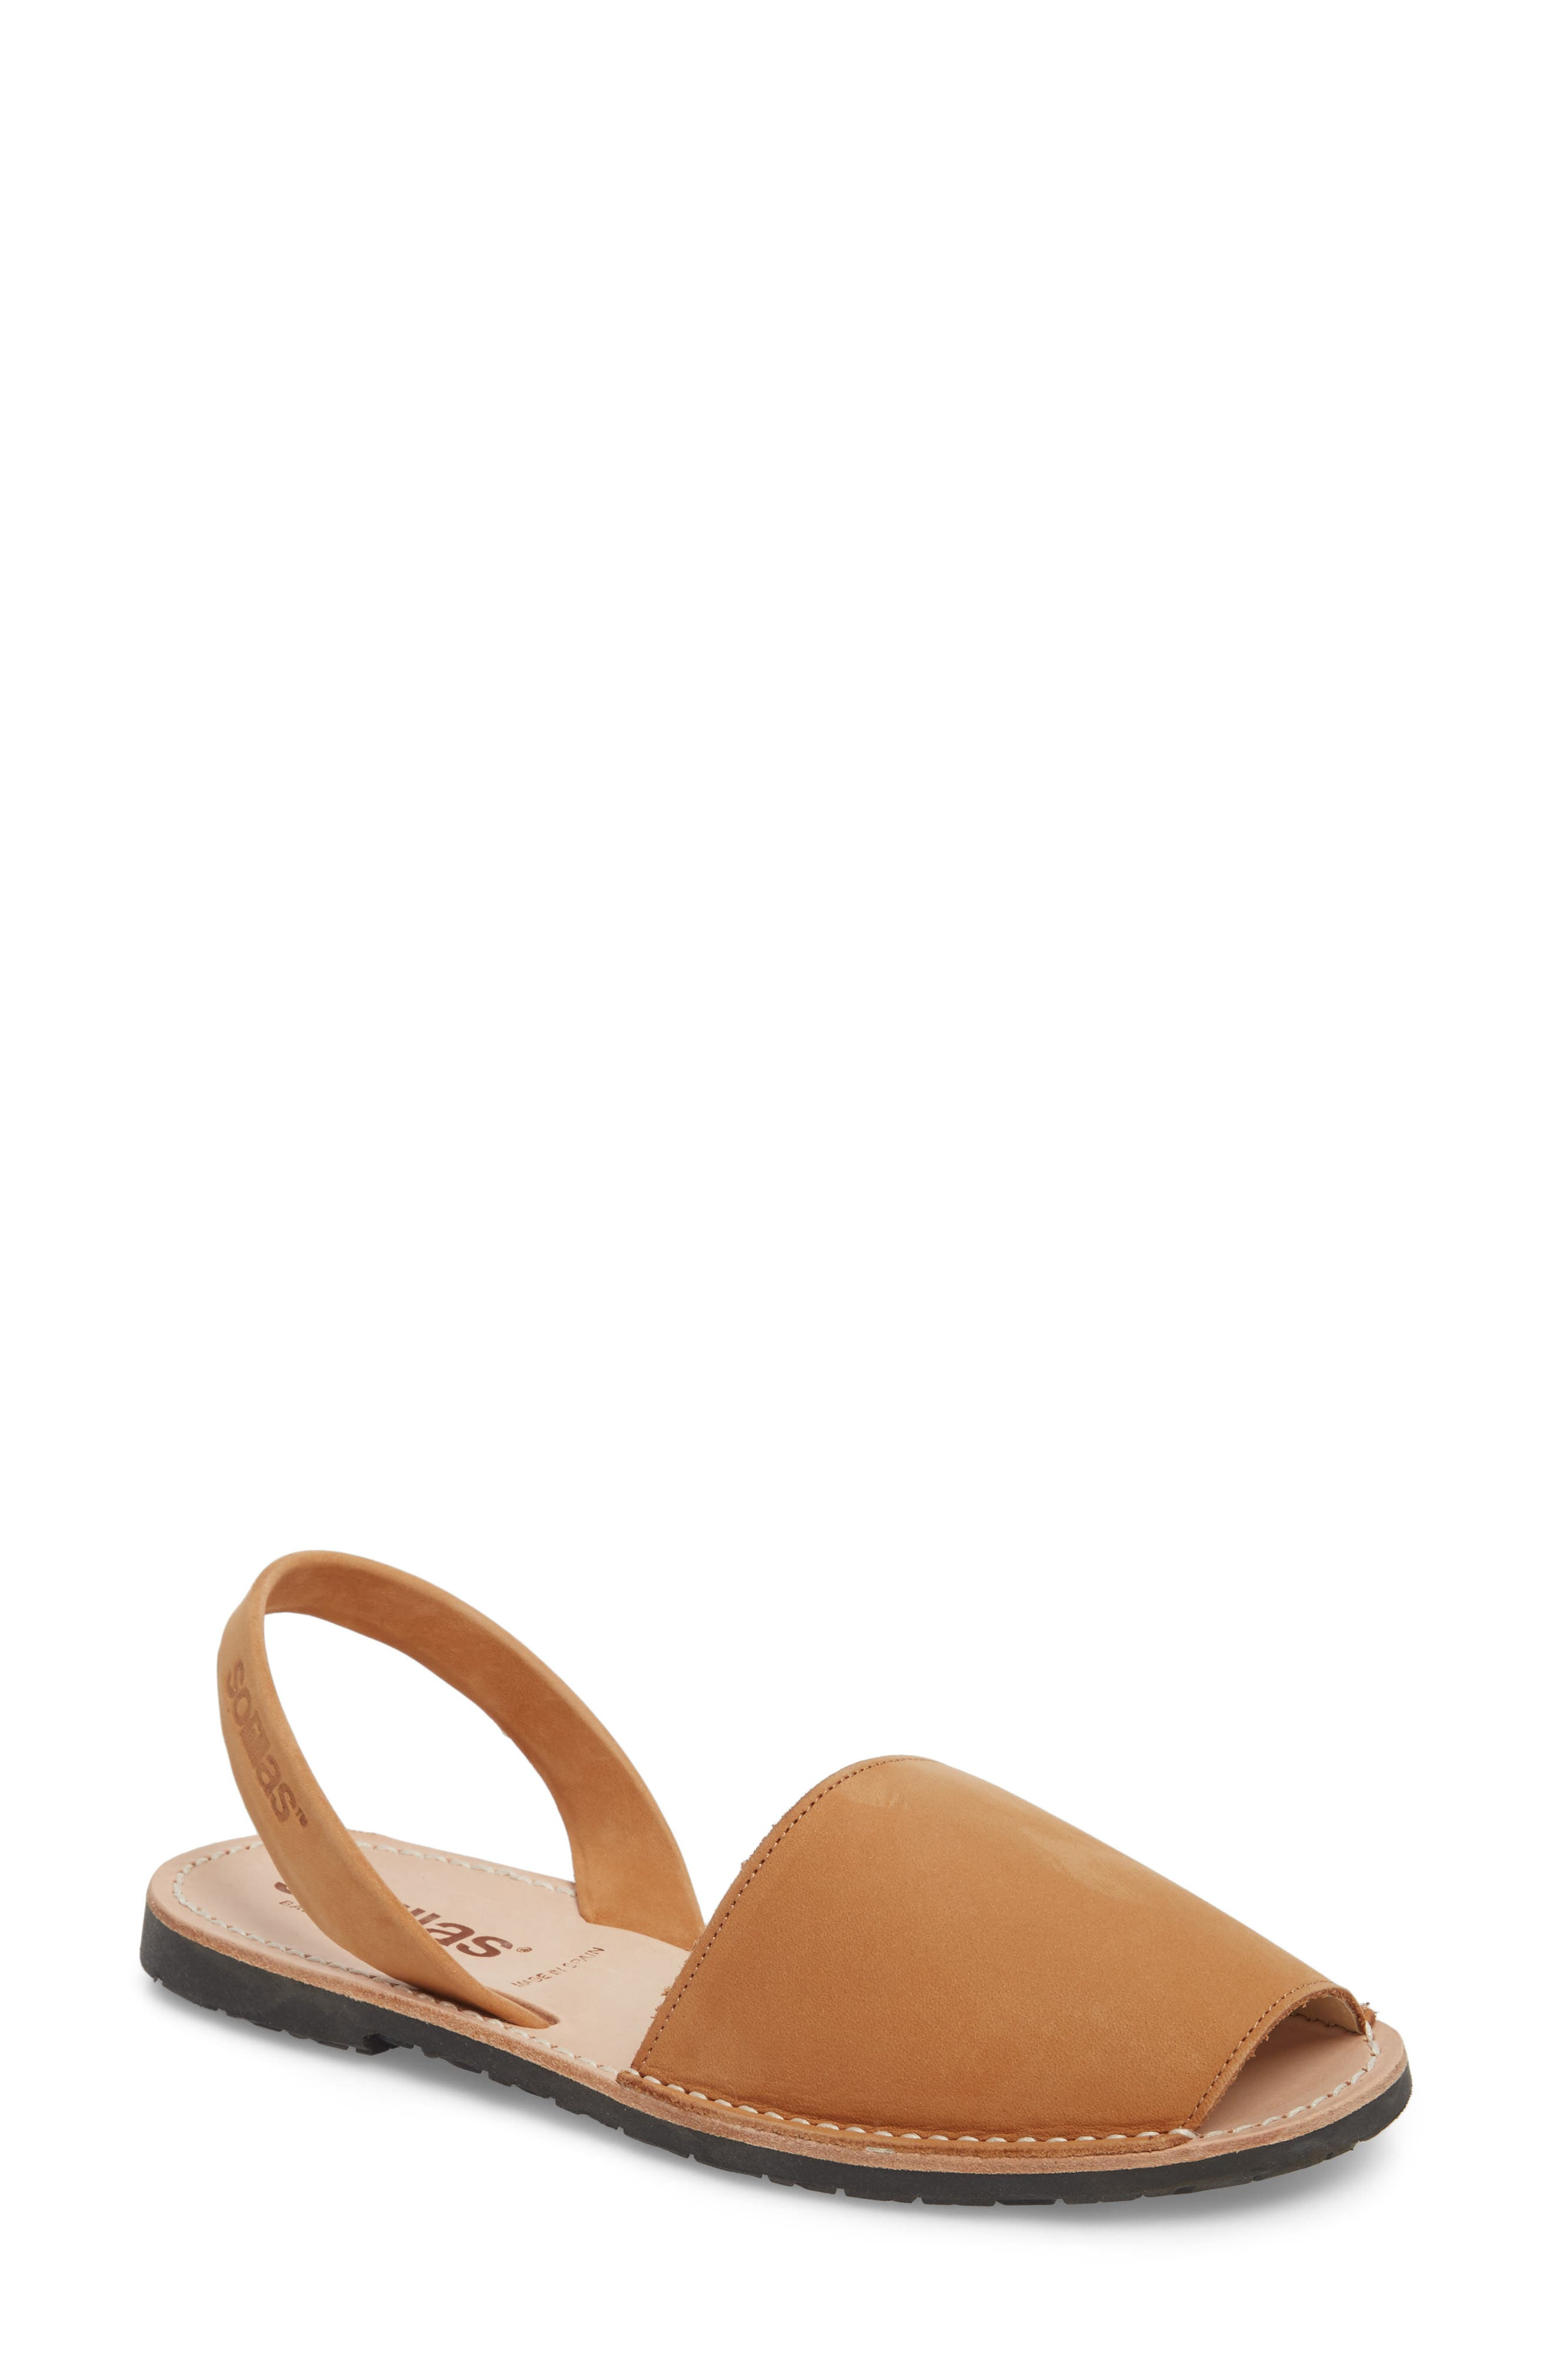 Flat Sandal,                             Main thumbnail 1, color,                             Tan